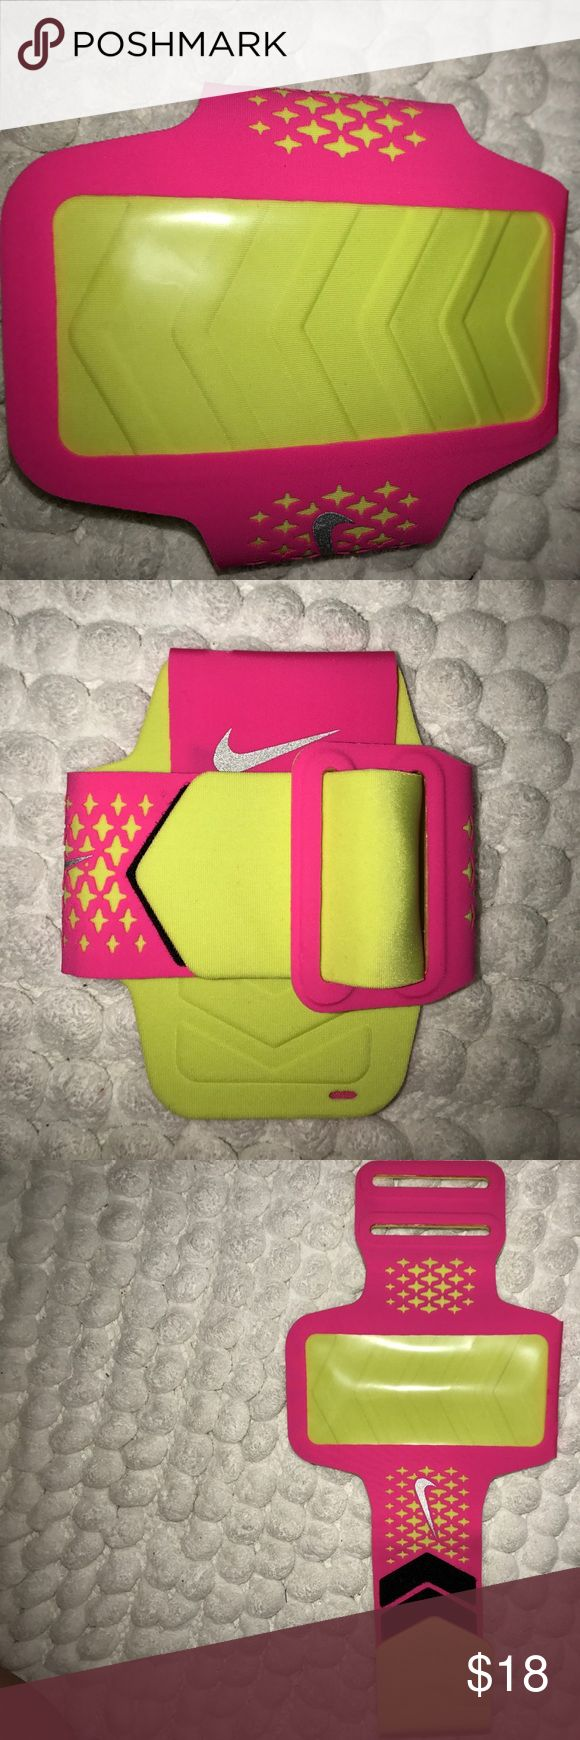 Nike iPhone 6s and below armband NWOT. NEVER used. I got two as gifts but then got a new phone and it doesn't fit them. Pink and yellow. For iPhone 6s and below. Make an offer. Nike Accessories Phone Cases